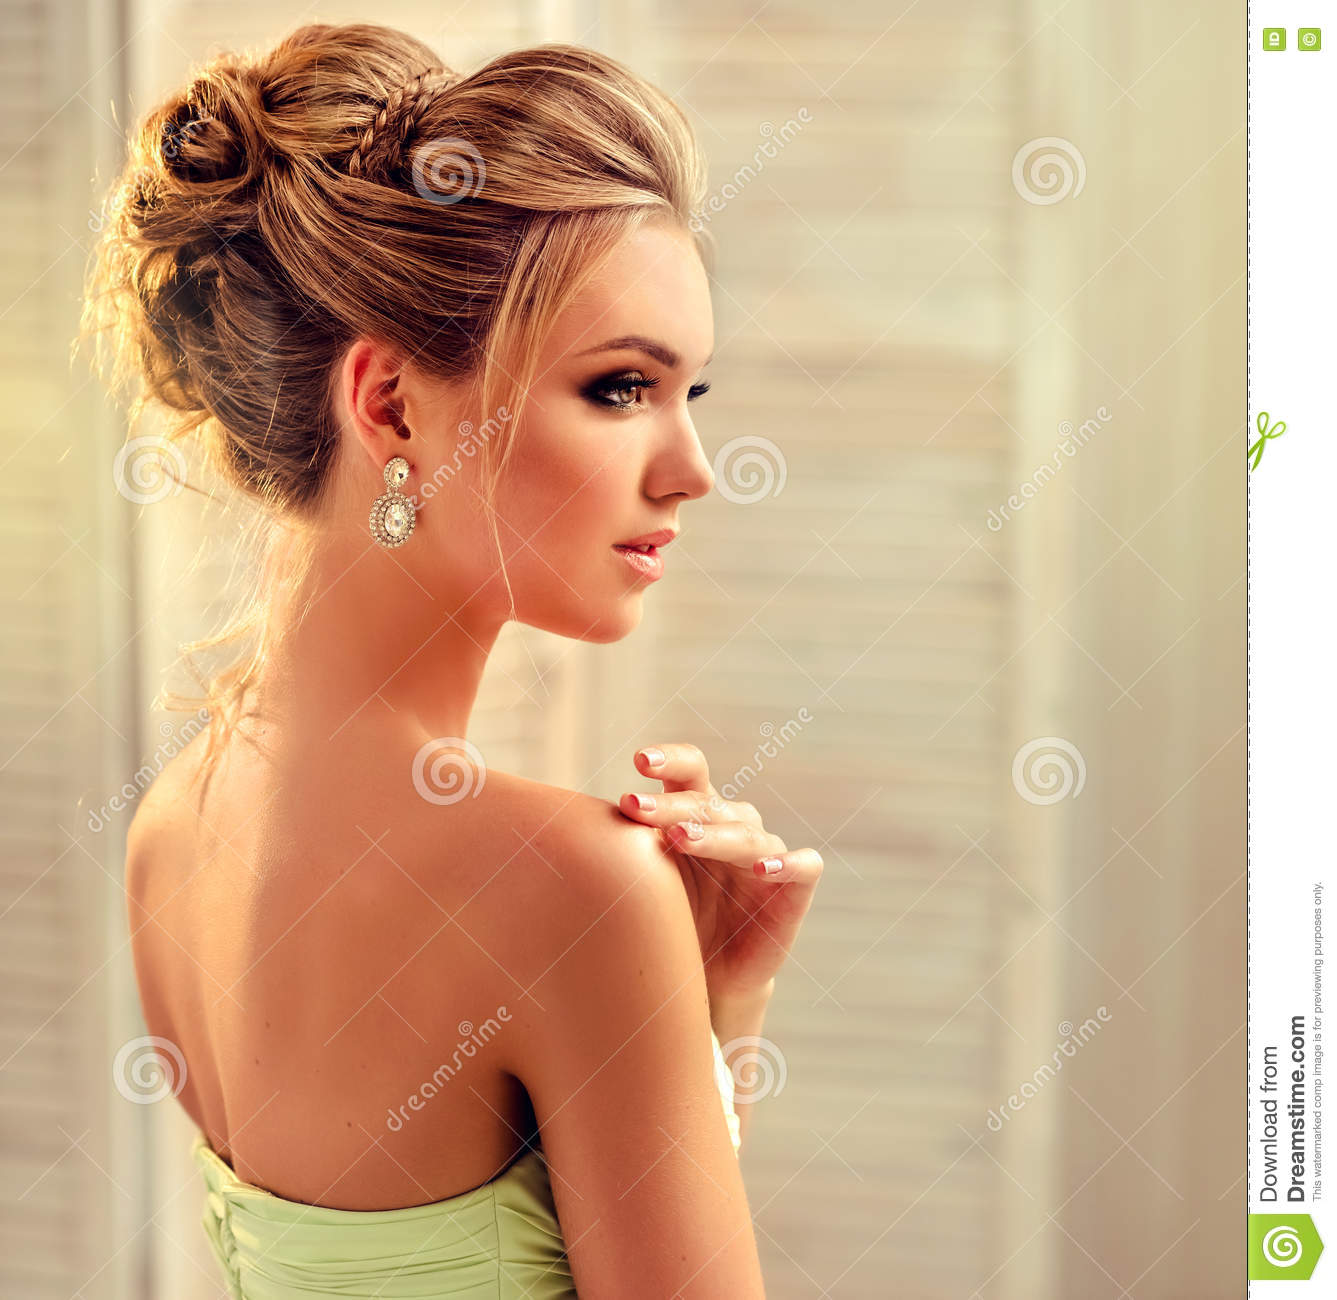 Woman With Blond Hair Wears In A Wedding Gown Stock Photo Image